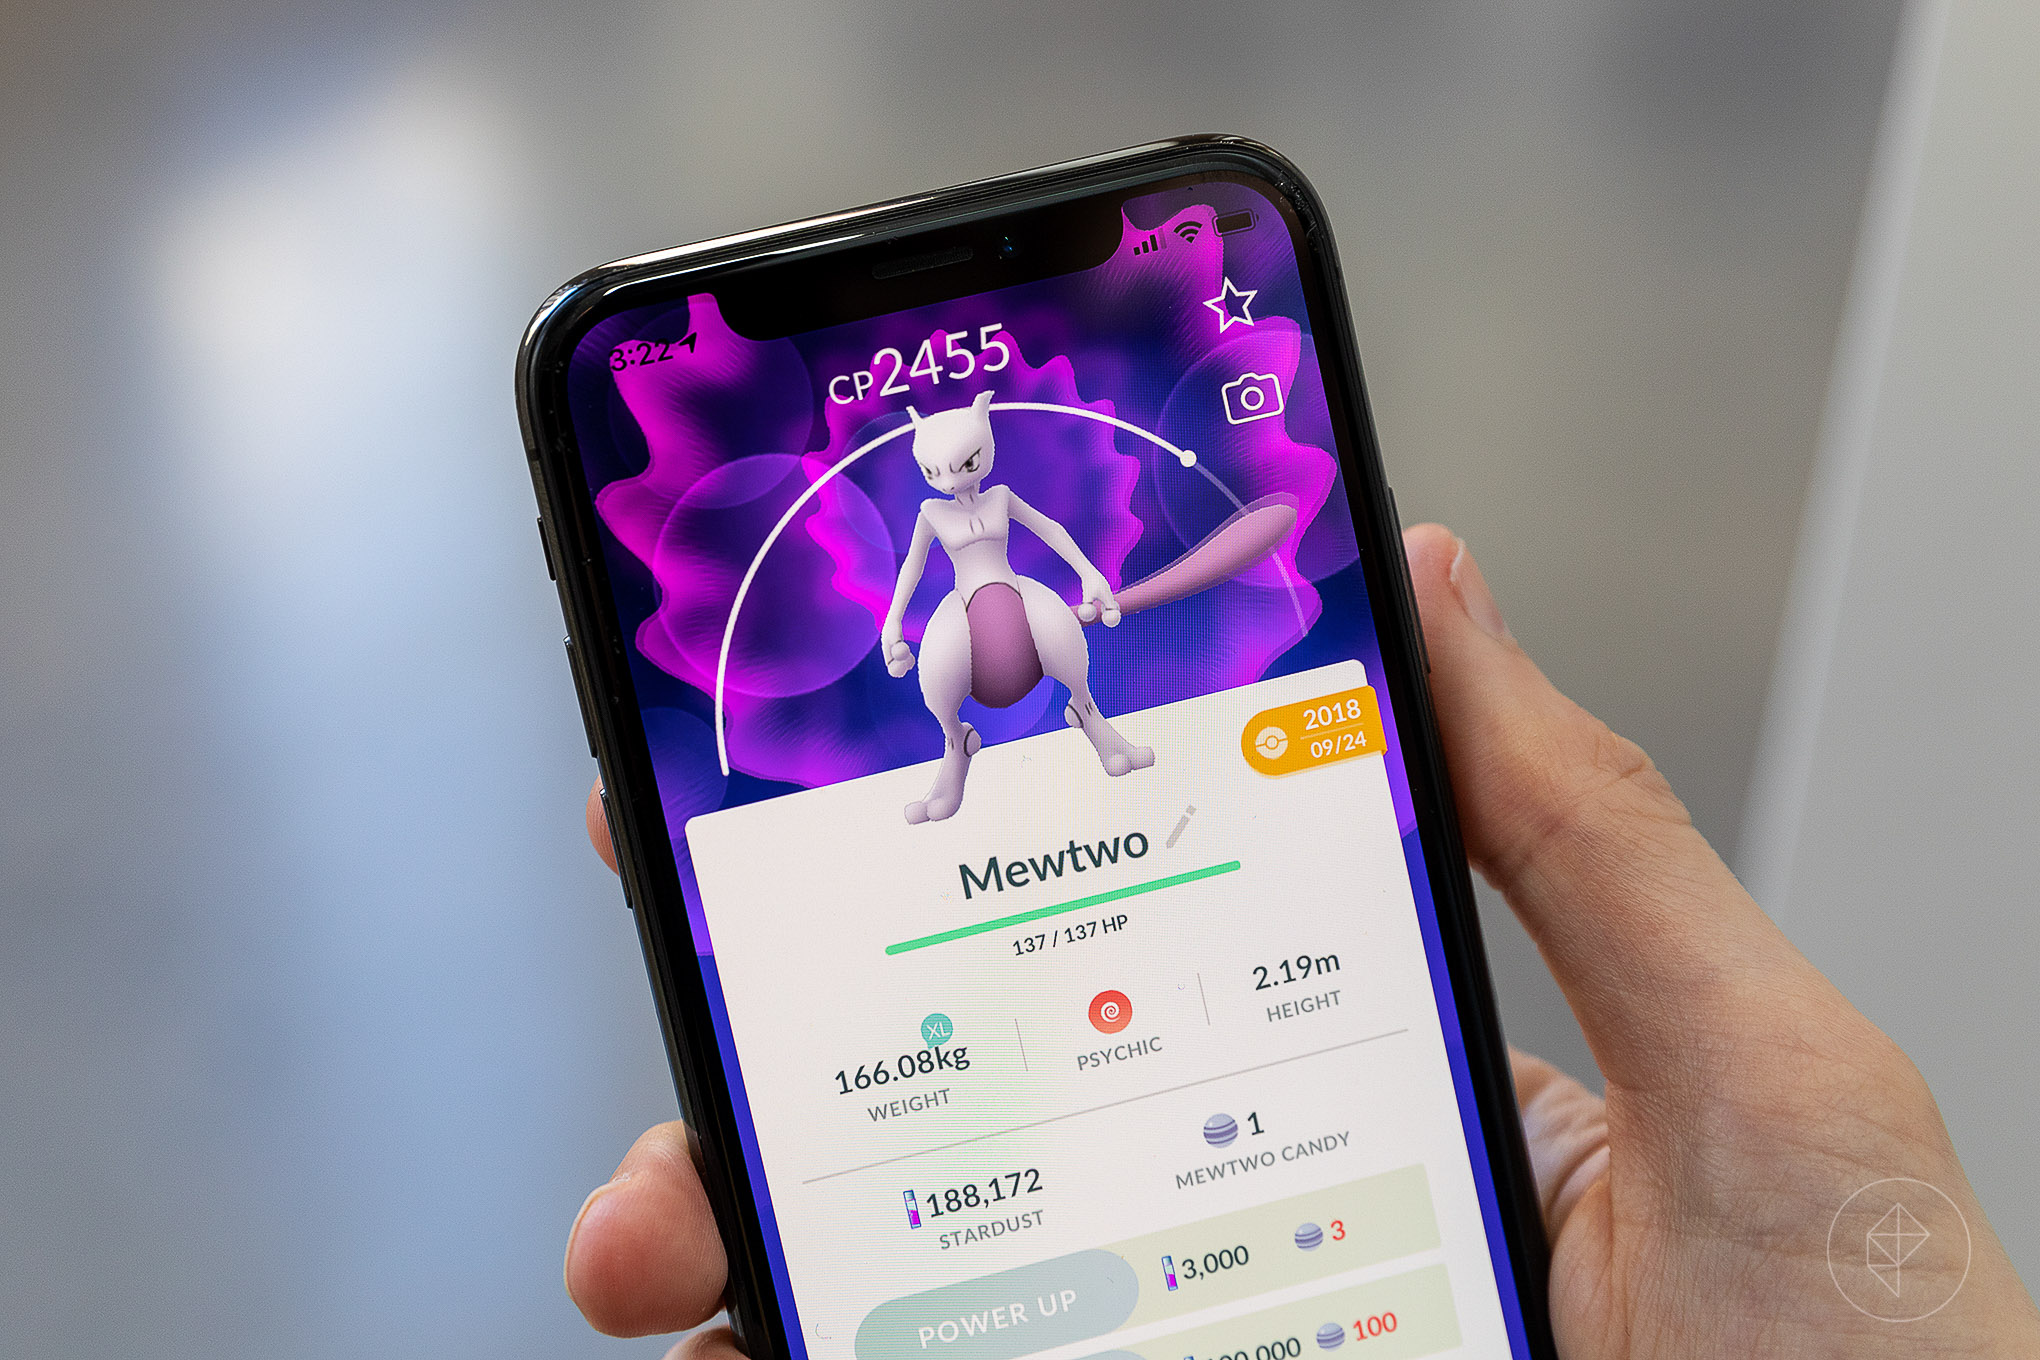 Pokémon Go Mewtwo raid guide: best counters and movesets